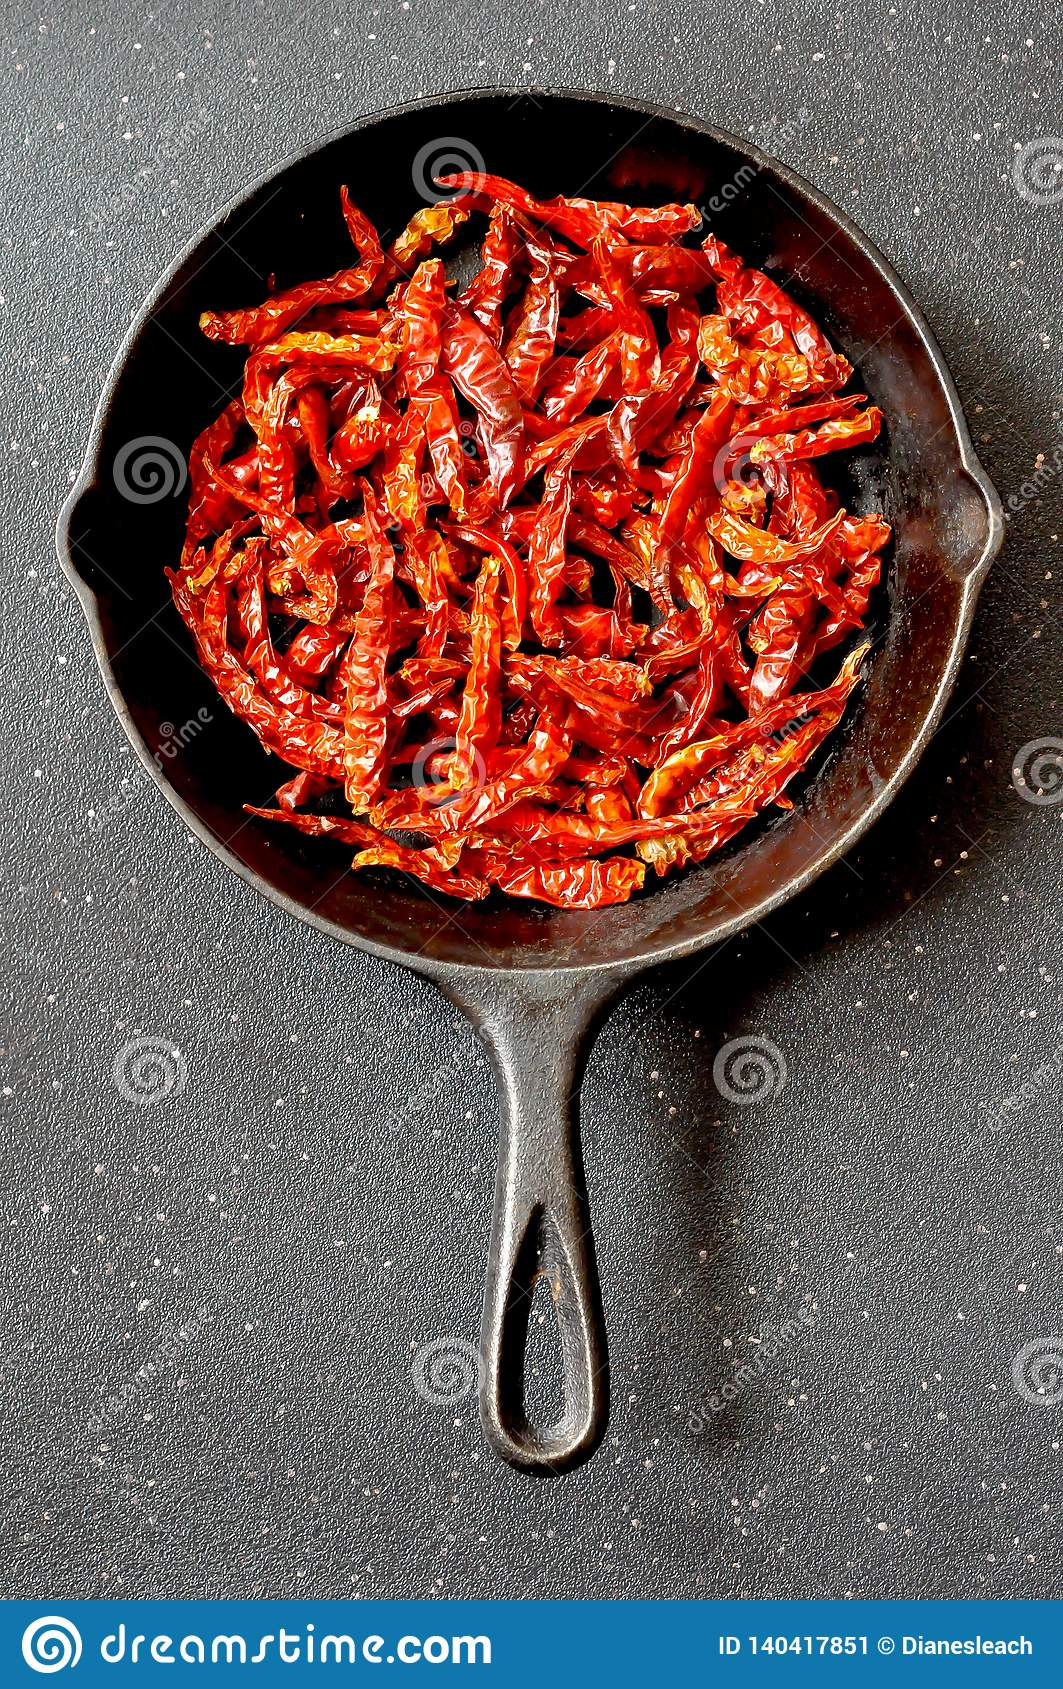 Dried red chili peppers in a cast iron frying pan, top view